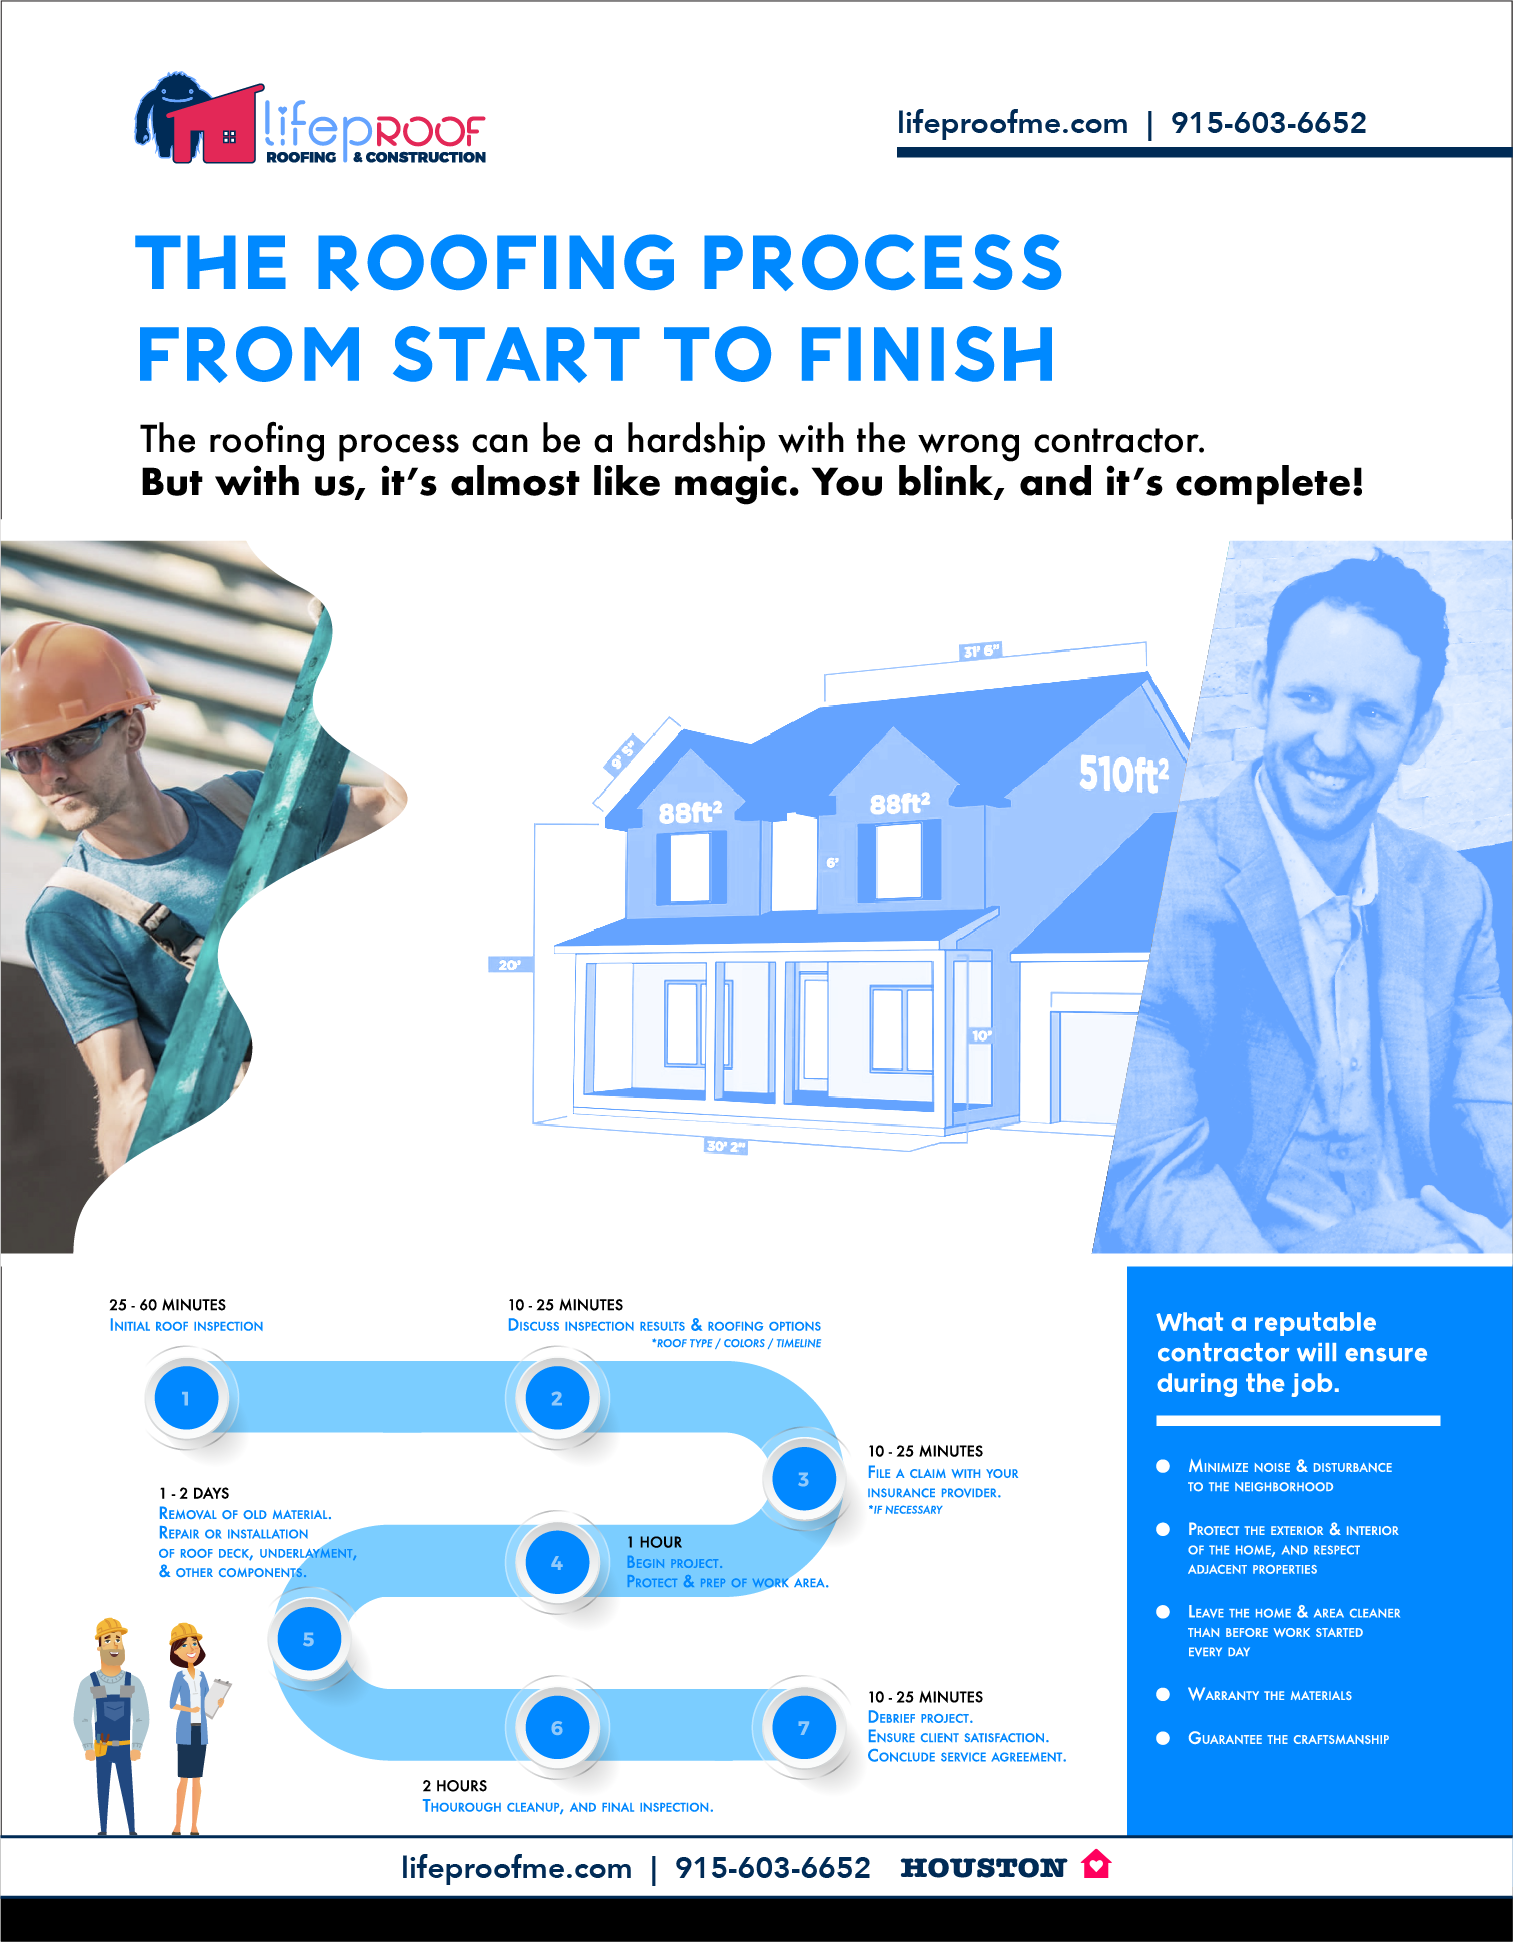 The Roofing Process - LifepROOF